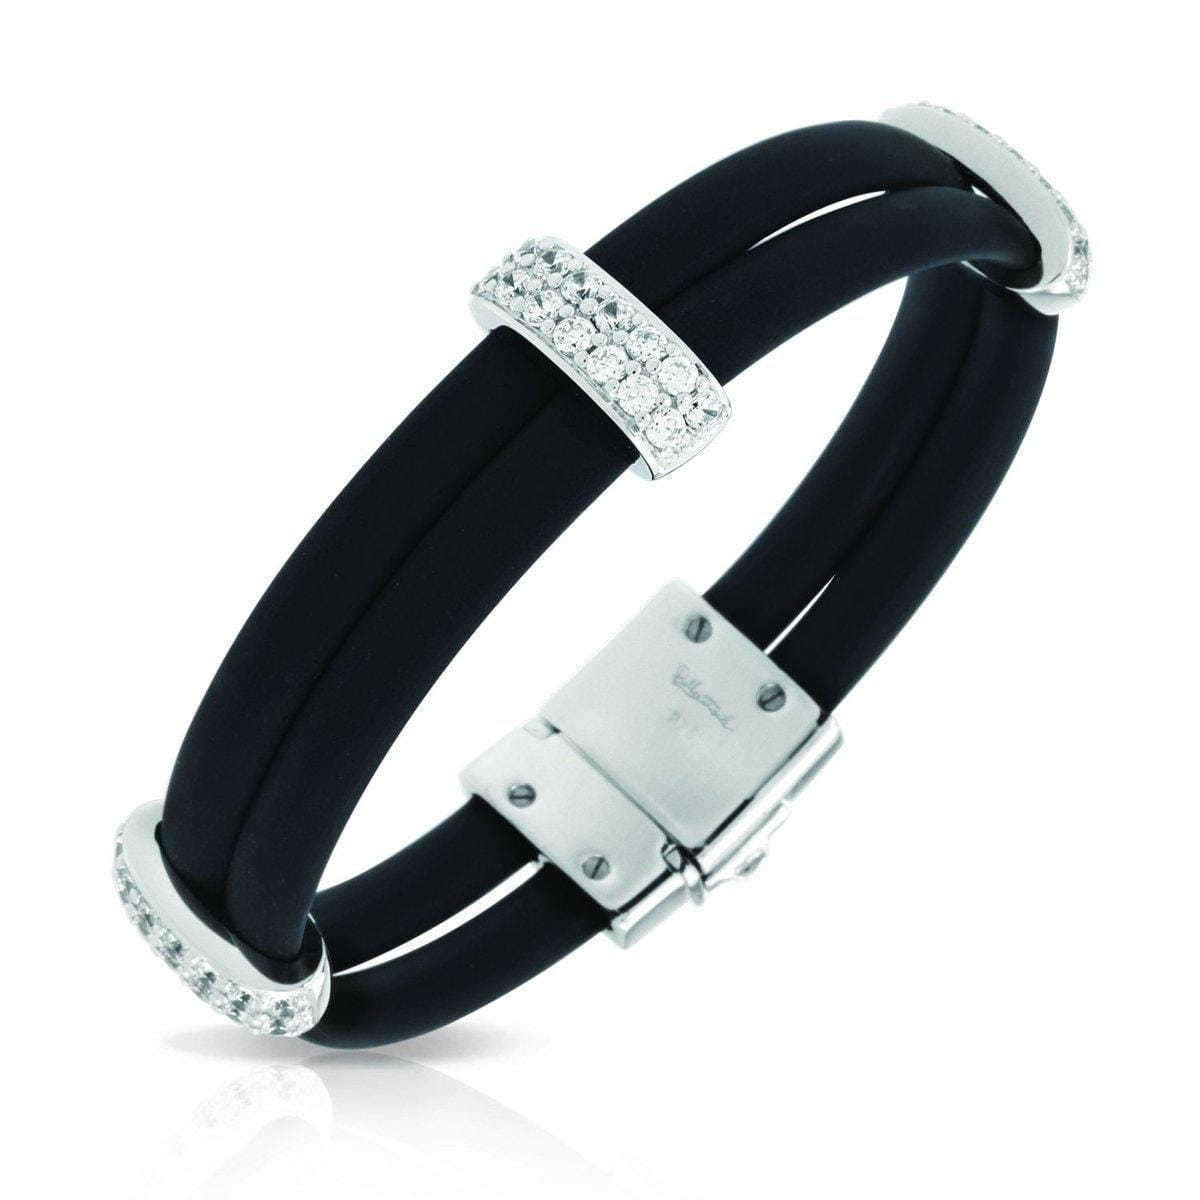 Enrapture Vertical Black Bracelet-Belle Etoile-Renee Taylor Gallery